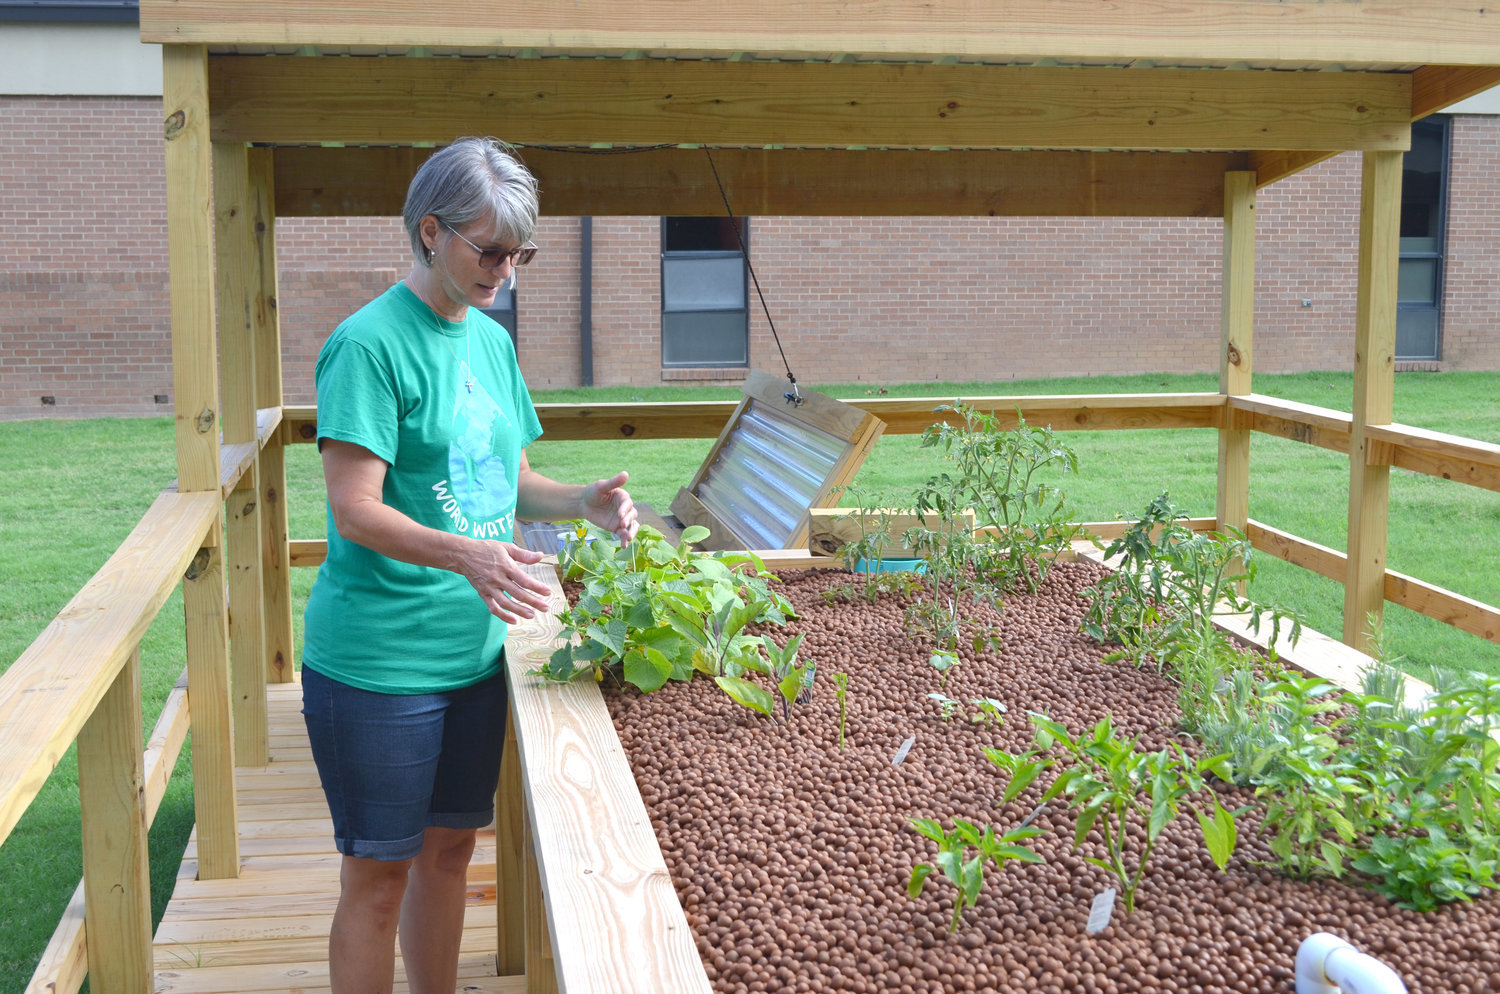 Mineola seventh-grade science teacher Susan Witt observes vegetables growing at an aquaponics station, the newest addition to the MISD Outdoor Science Center. At the side of the garden is the tank containing perch caught at Spring Lake in Mineola. (Monitor photo by Hank Murphy)